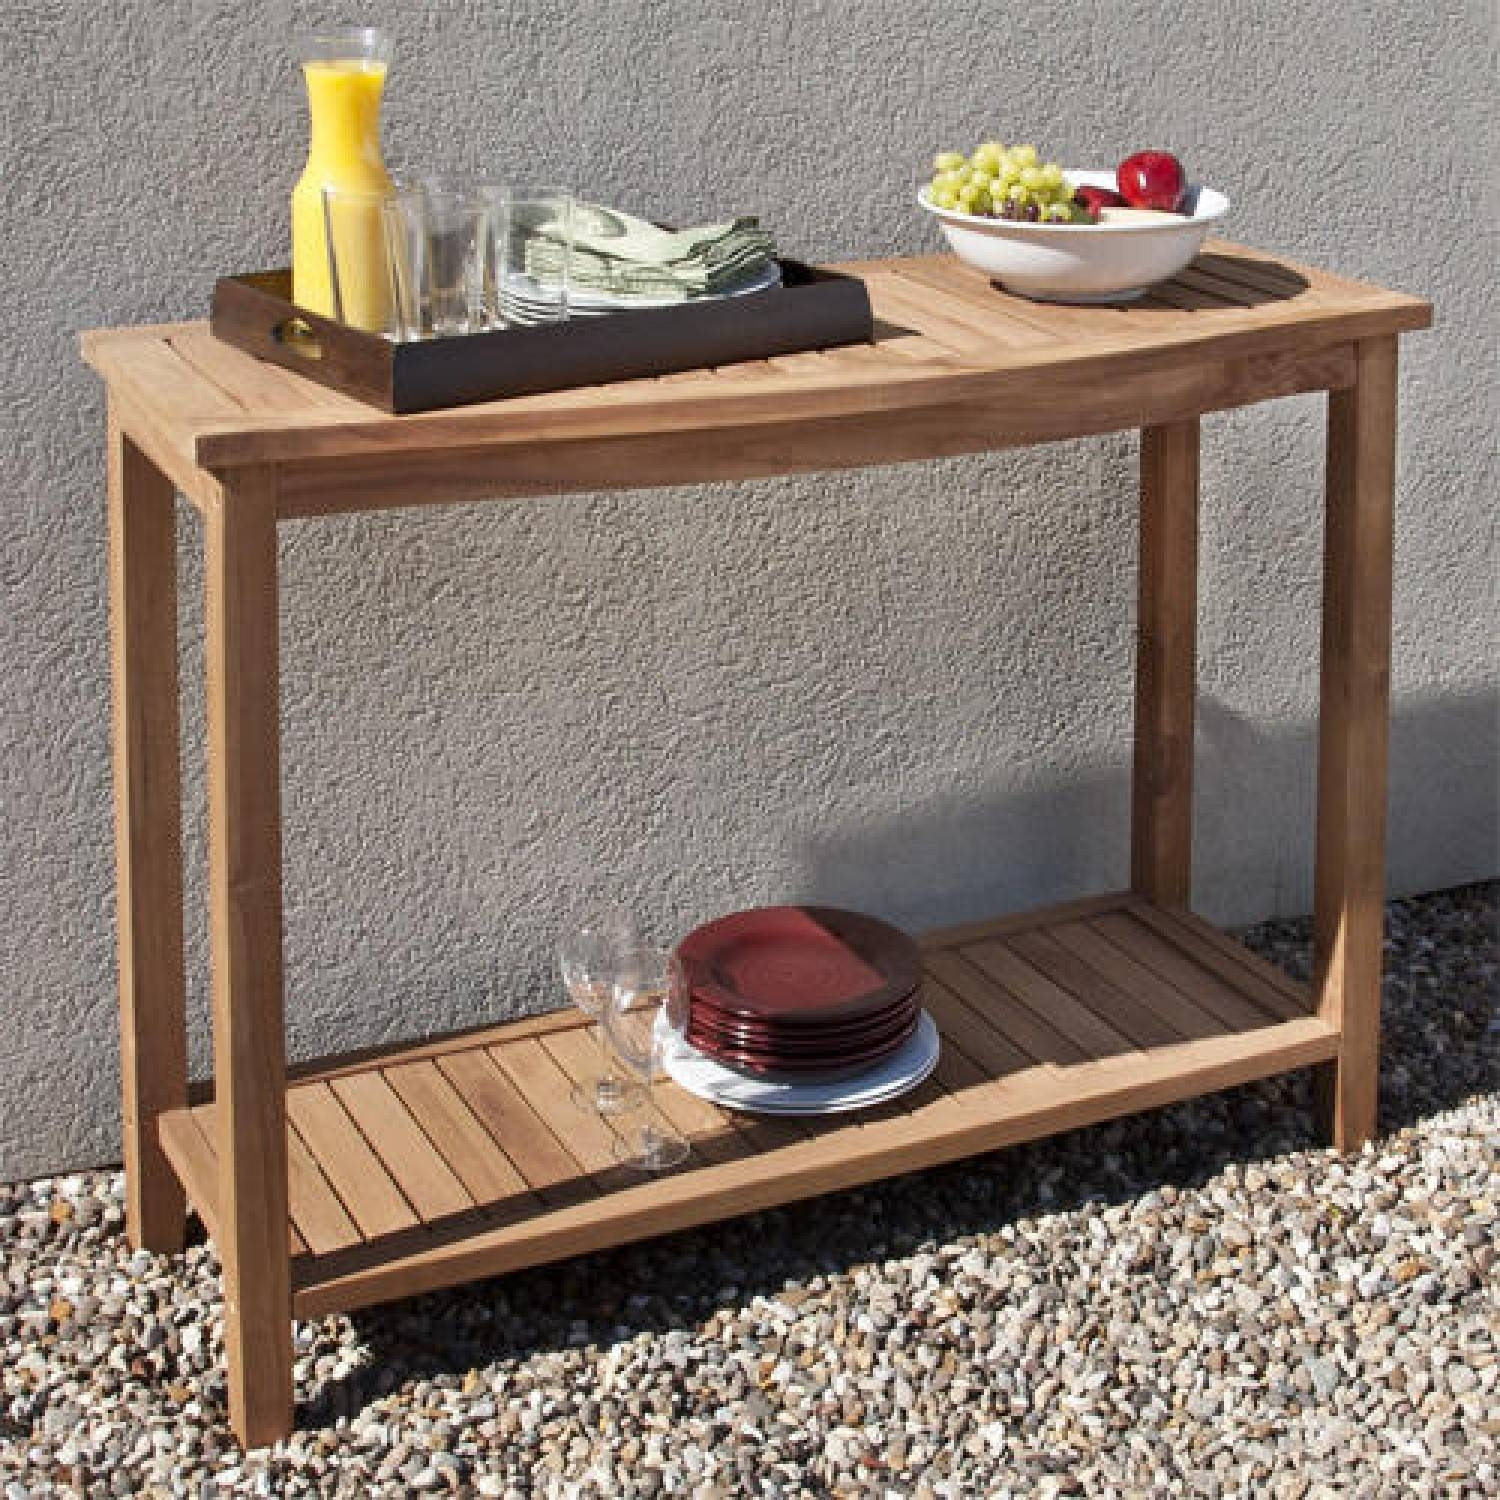 Console Tables : Outdoor Buffet Console Table For Bbq Party Blue Intended For Outdoor Sideboard Tables (View 15 of 15)